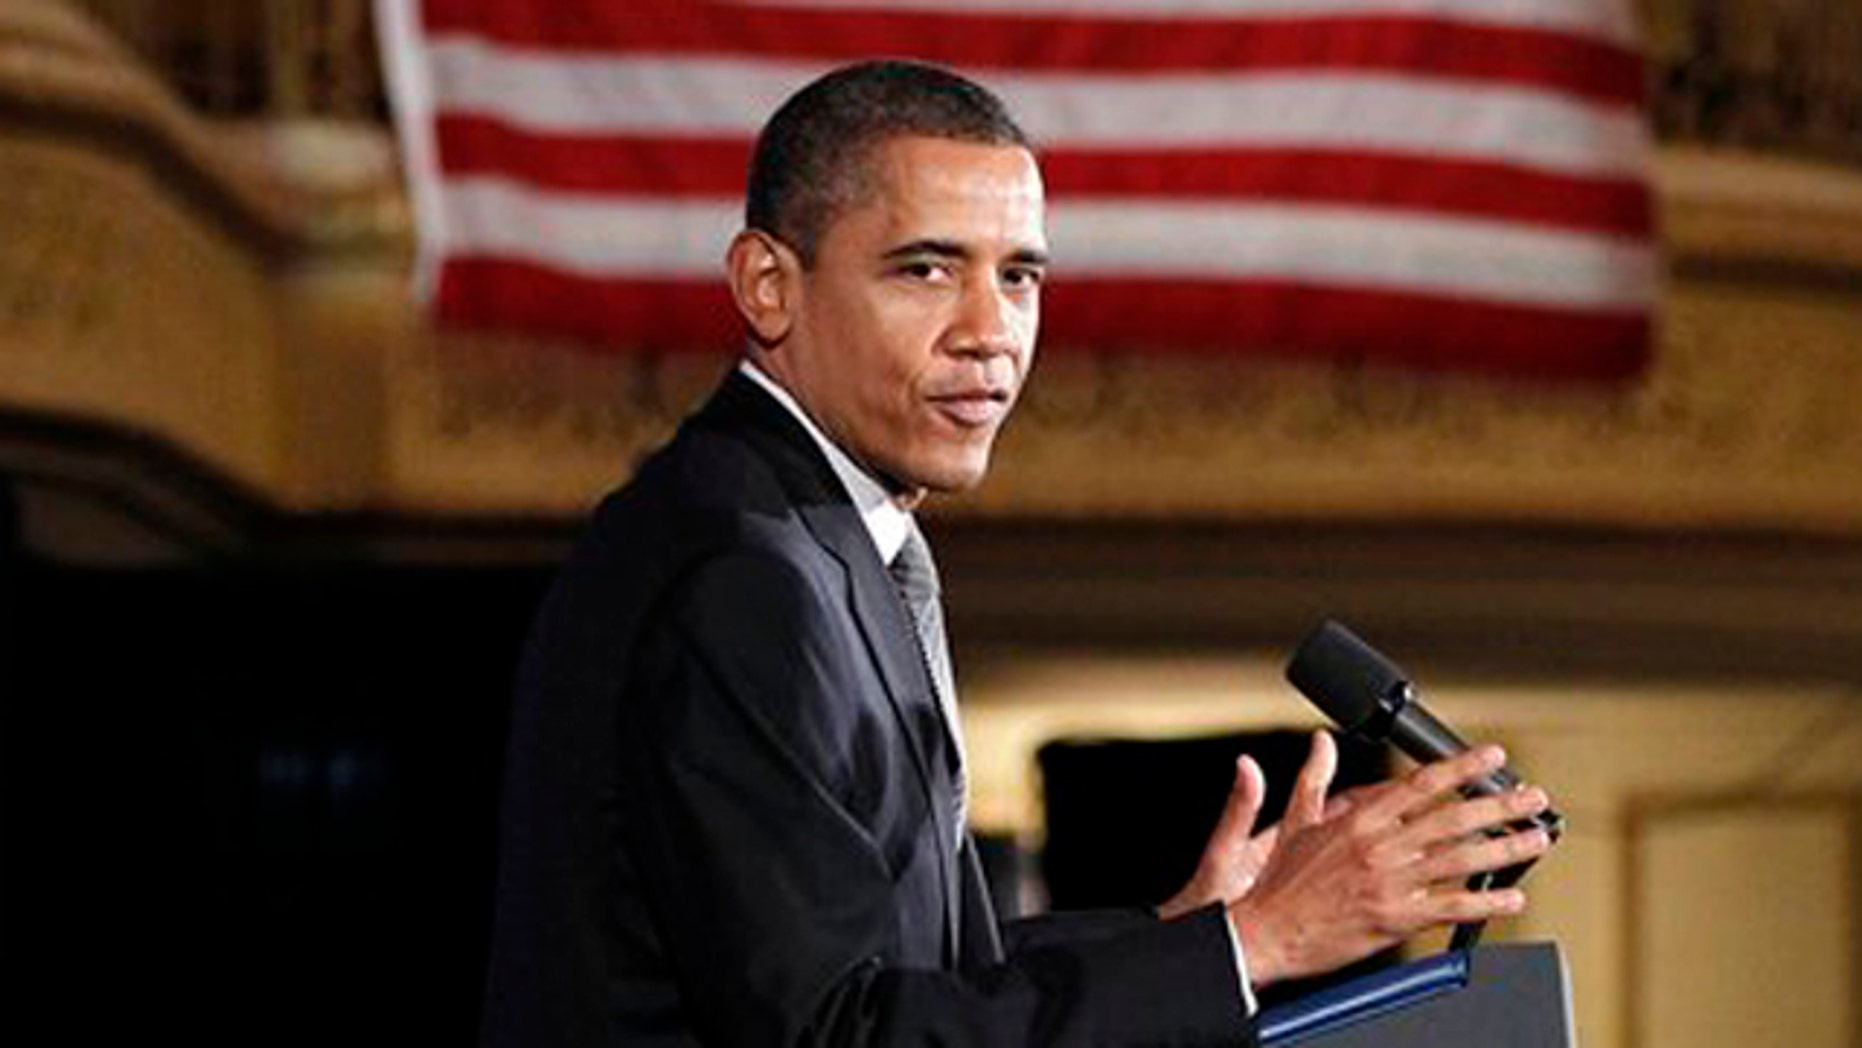 March 16, 2012: President Obama speaks during a 'Lawyers for Obama Luncheon' fundraiser at the Palmer House Hotel in Chicago.